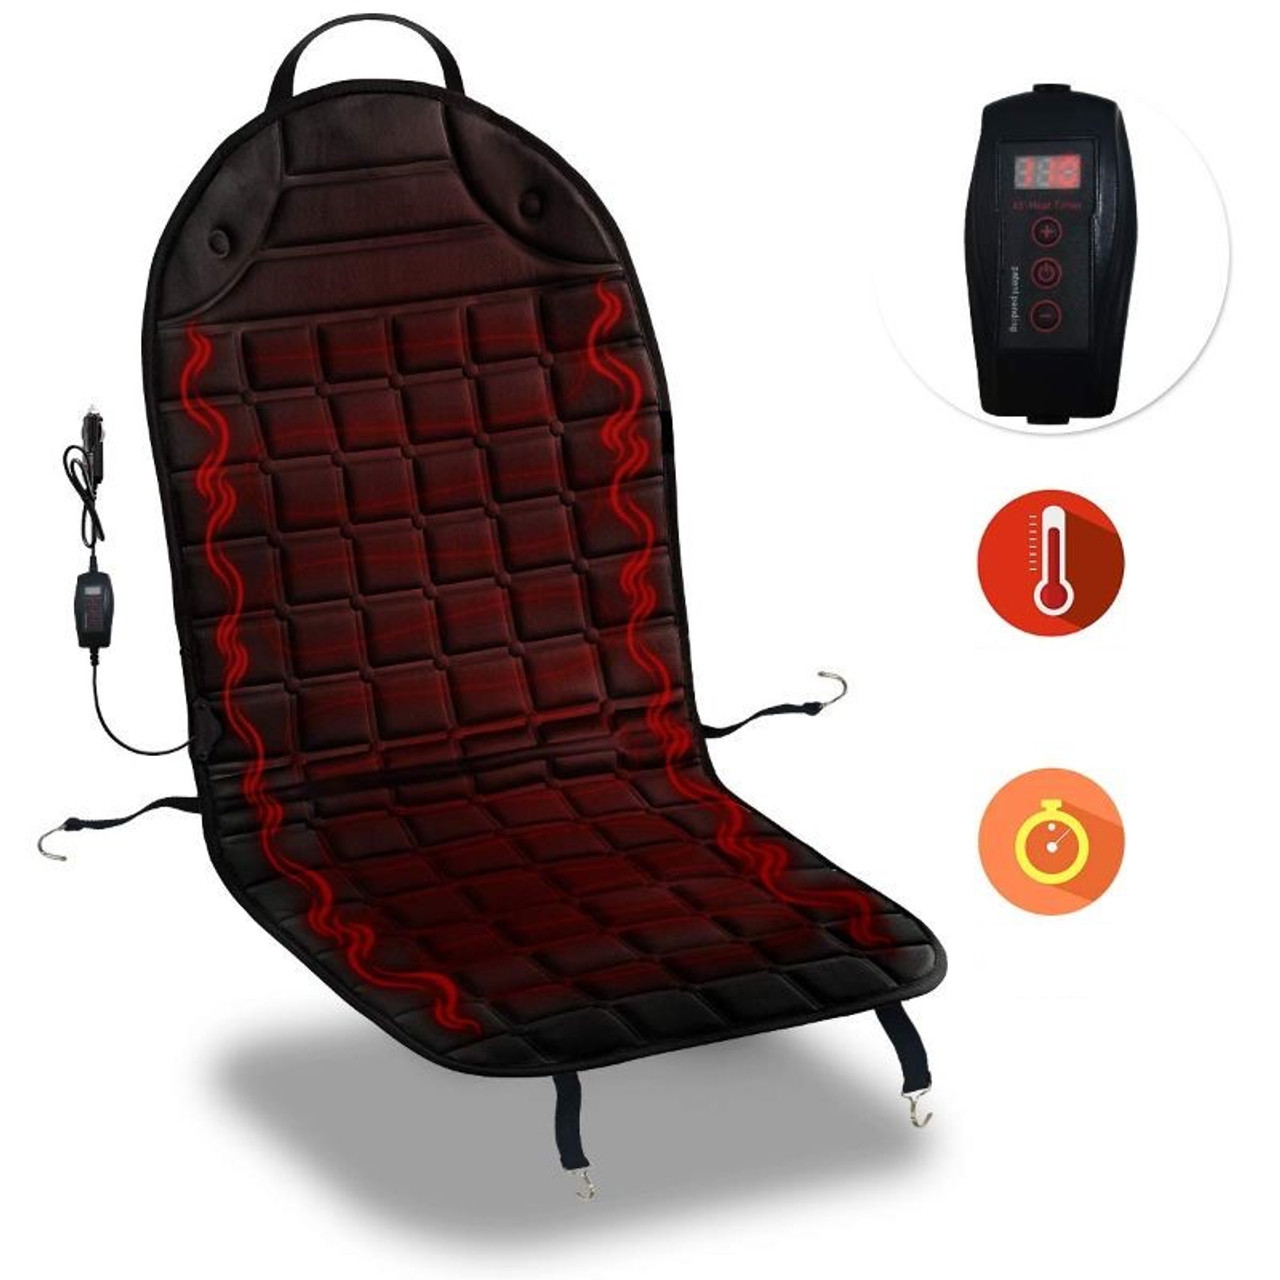 Heated Seat Cover and Warmer - 2019 Version